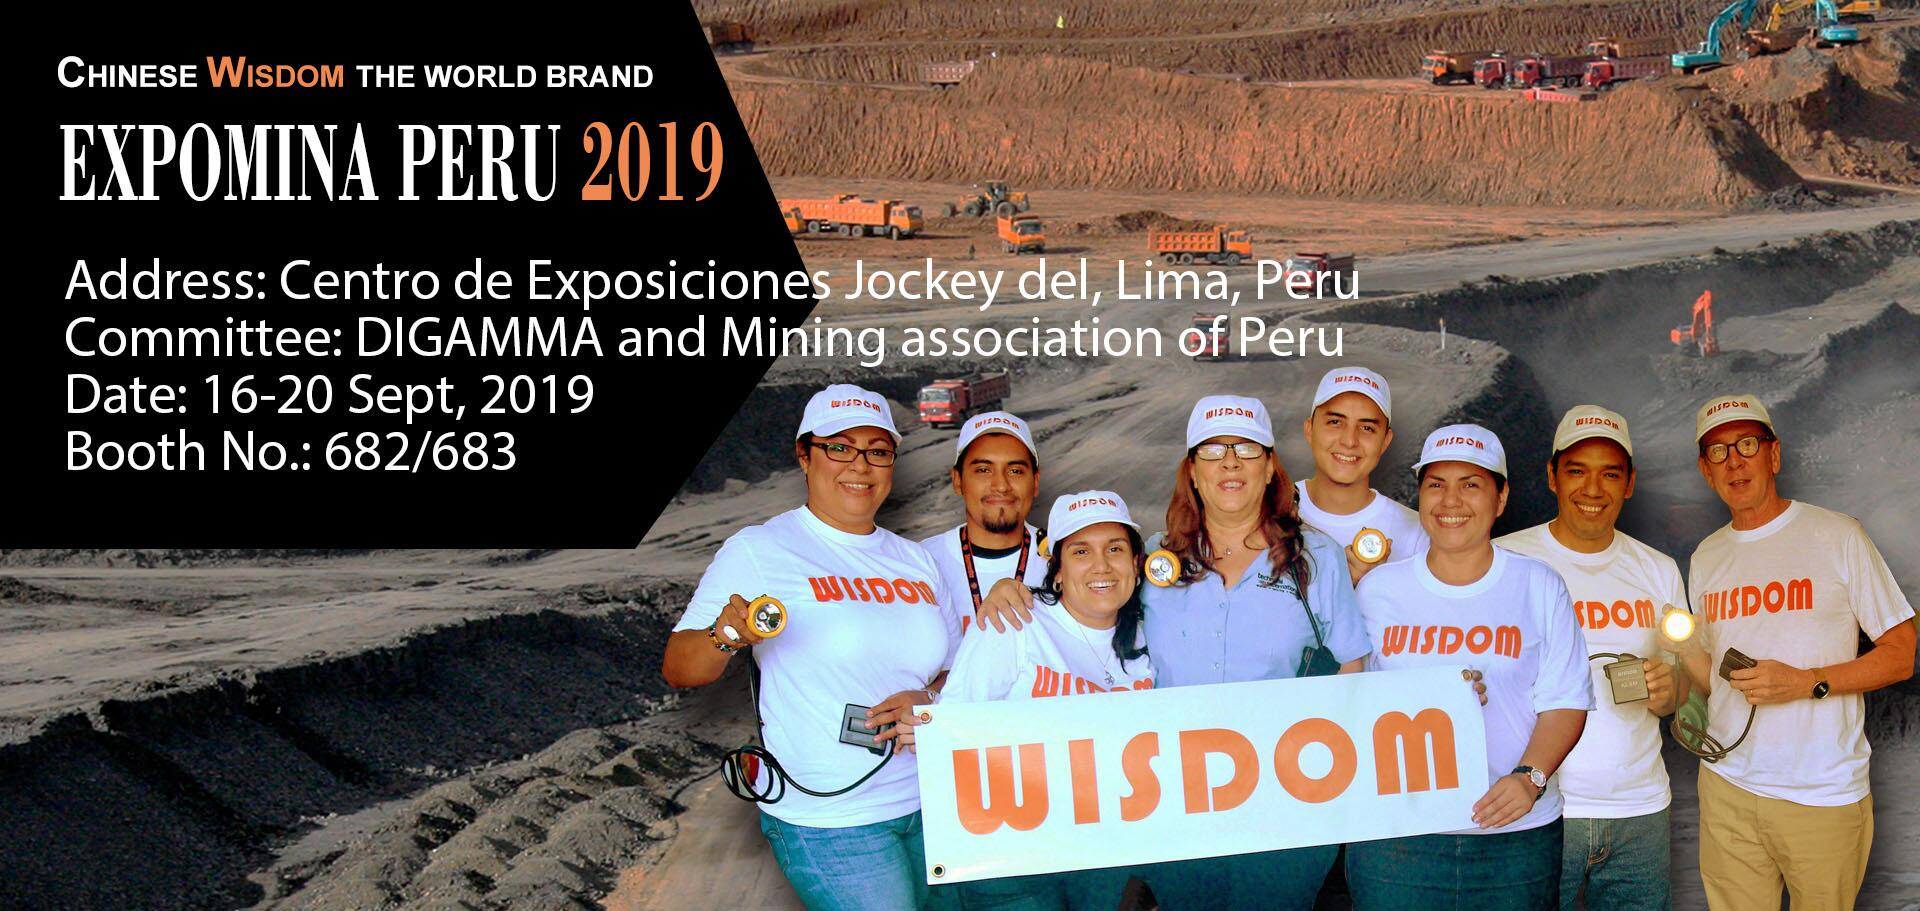 WISDOM will attend EXPOMINA PERU 2016